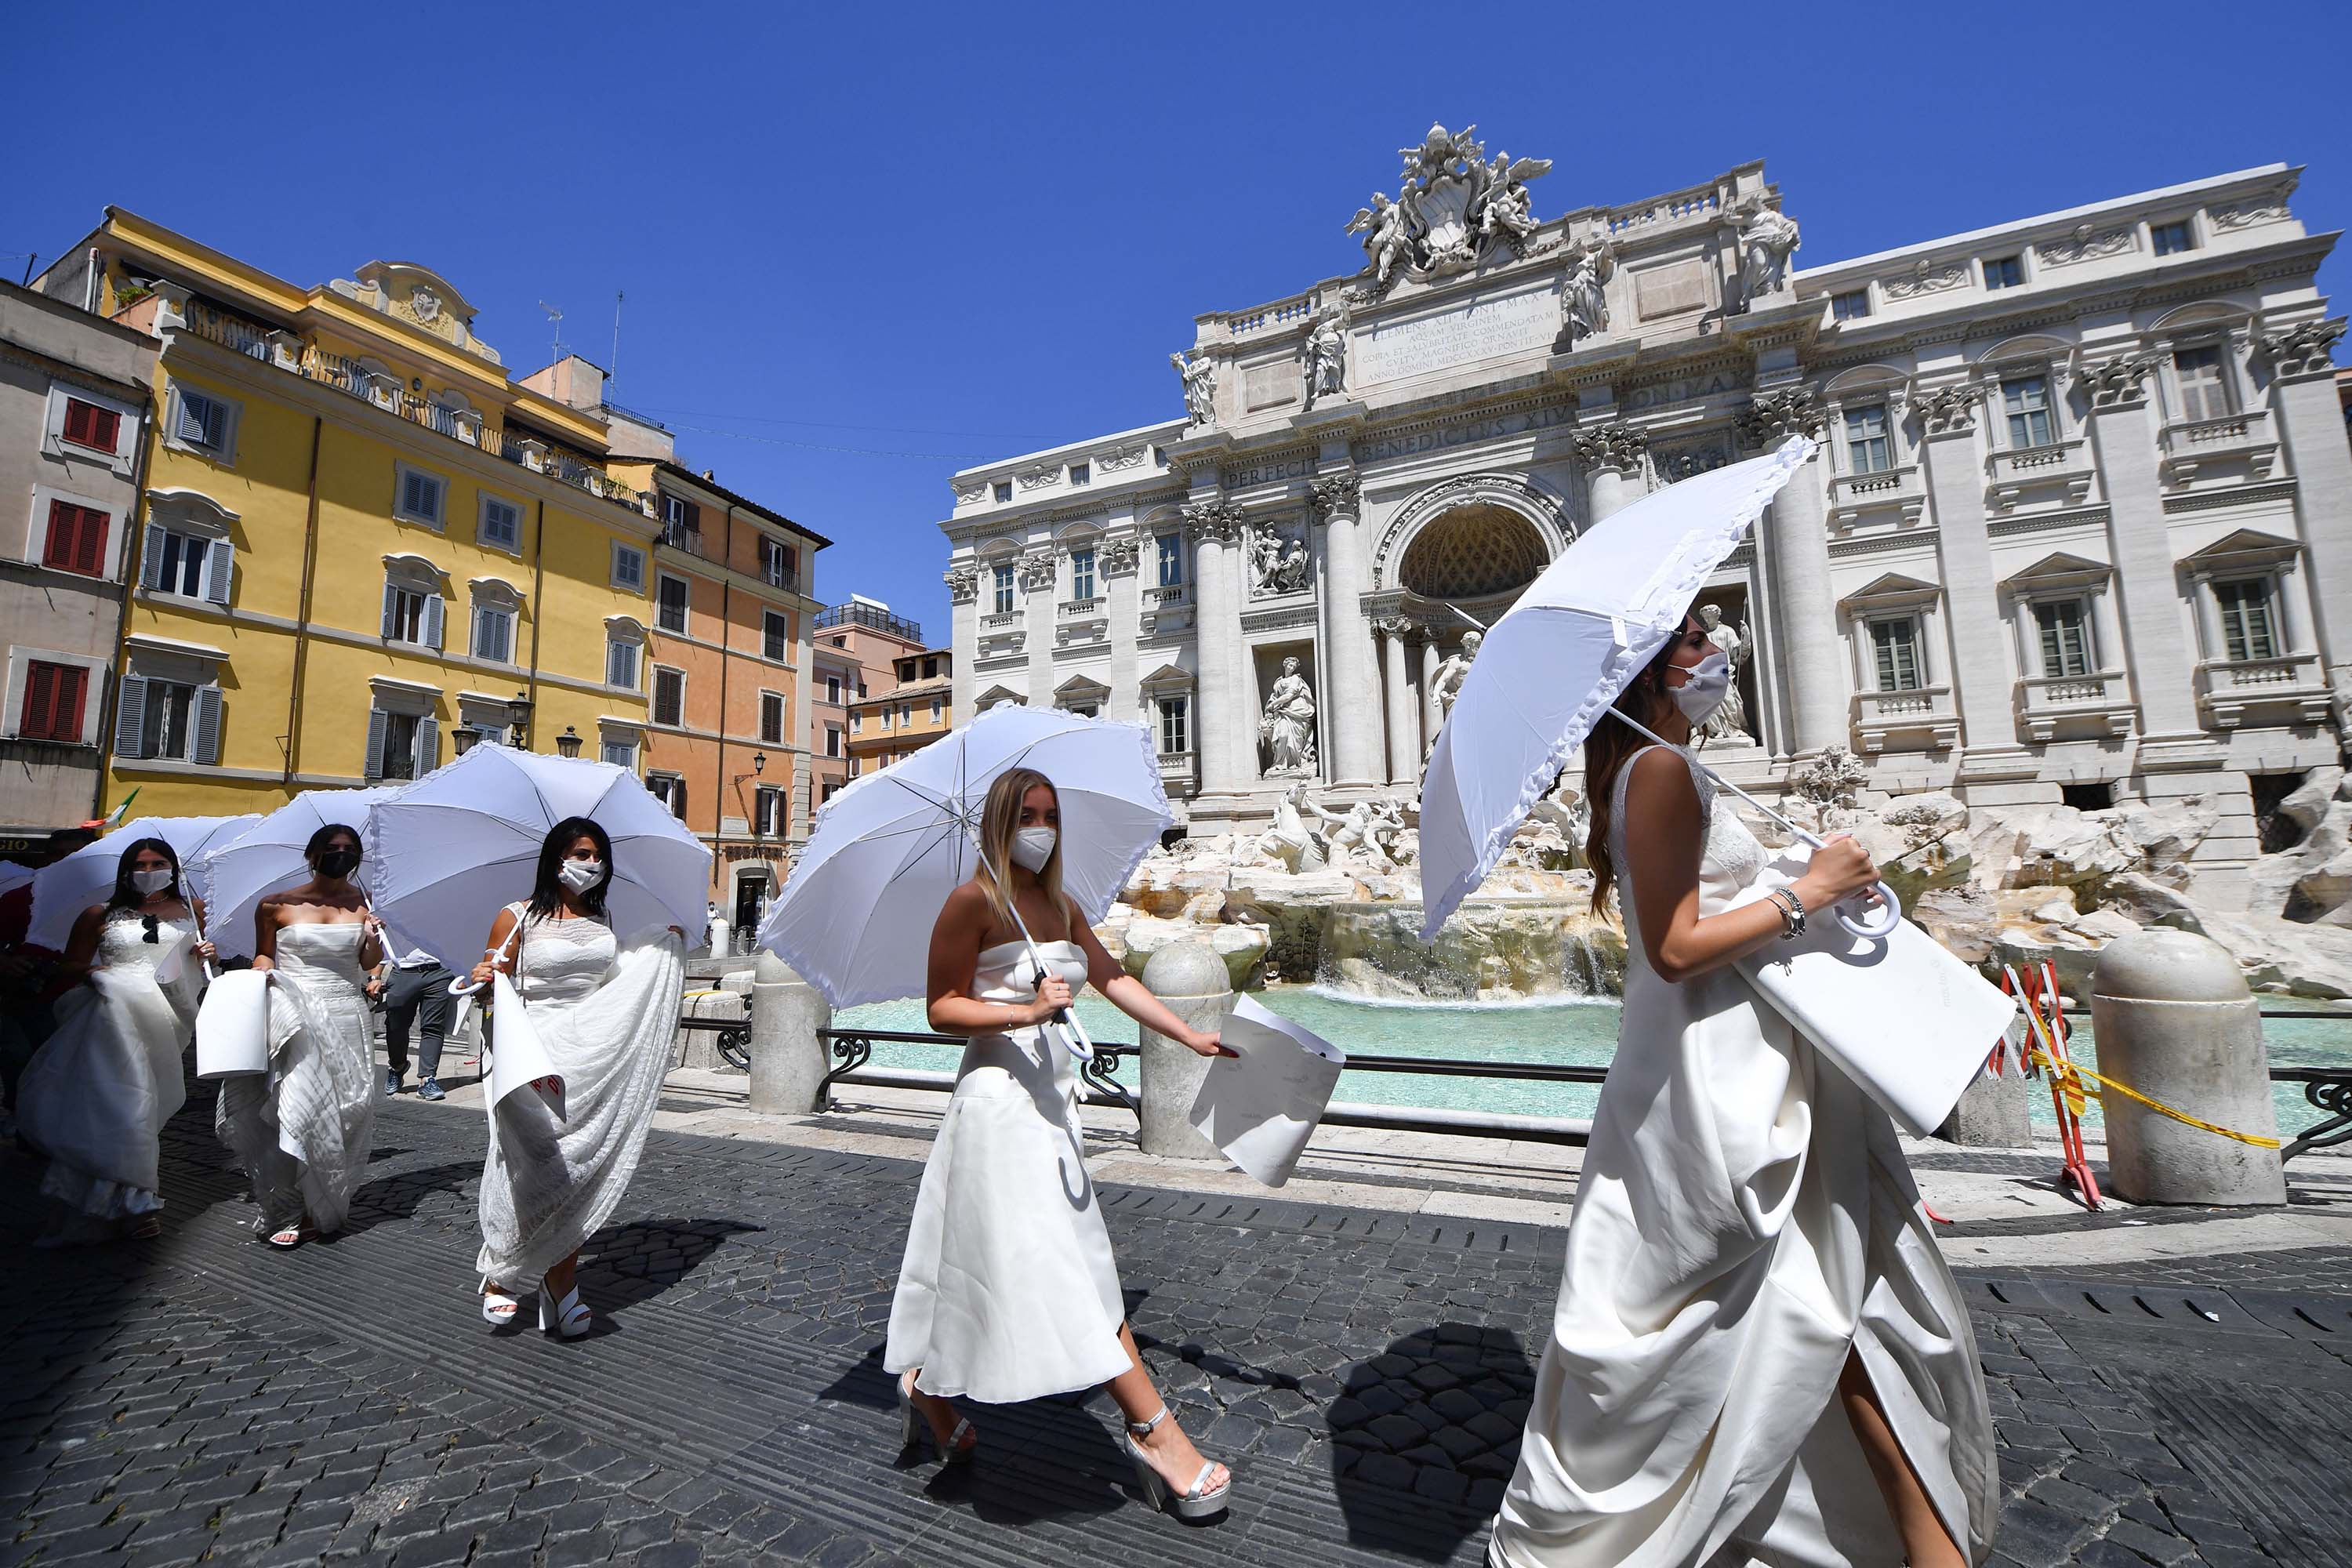 Women wearing wedding dresses stage a flashmob protest by the Trevi fountain in Rome, Italy, on July 7.